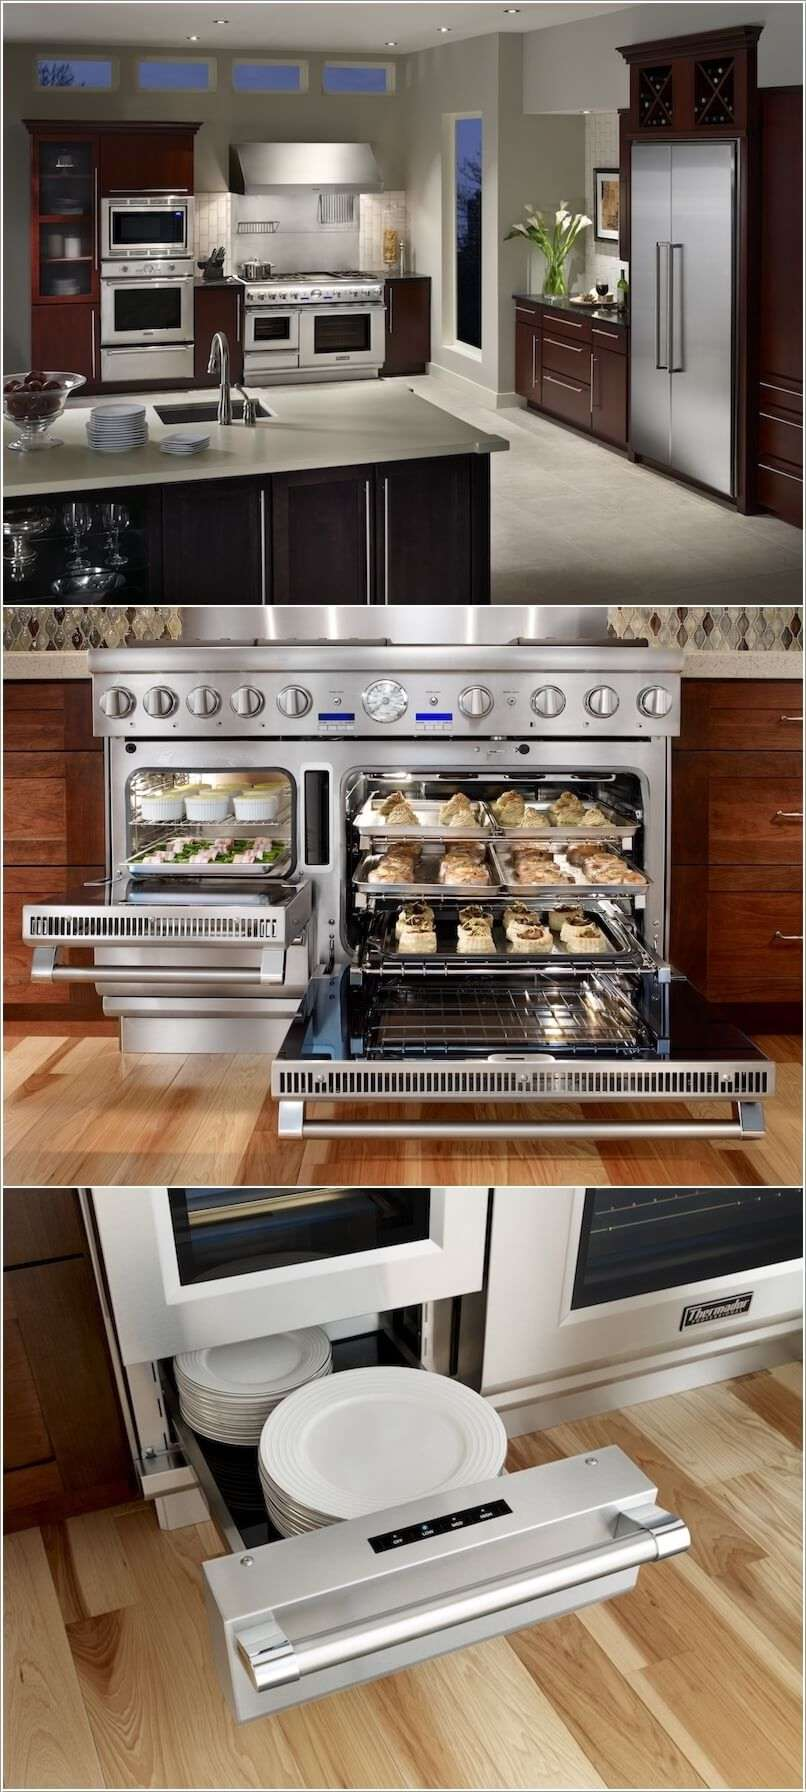 Uncategorized Dream Kitchen Appliances 15 dream kitchen appliances that you would love to have 3